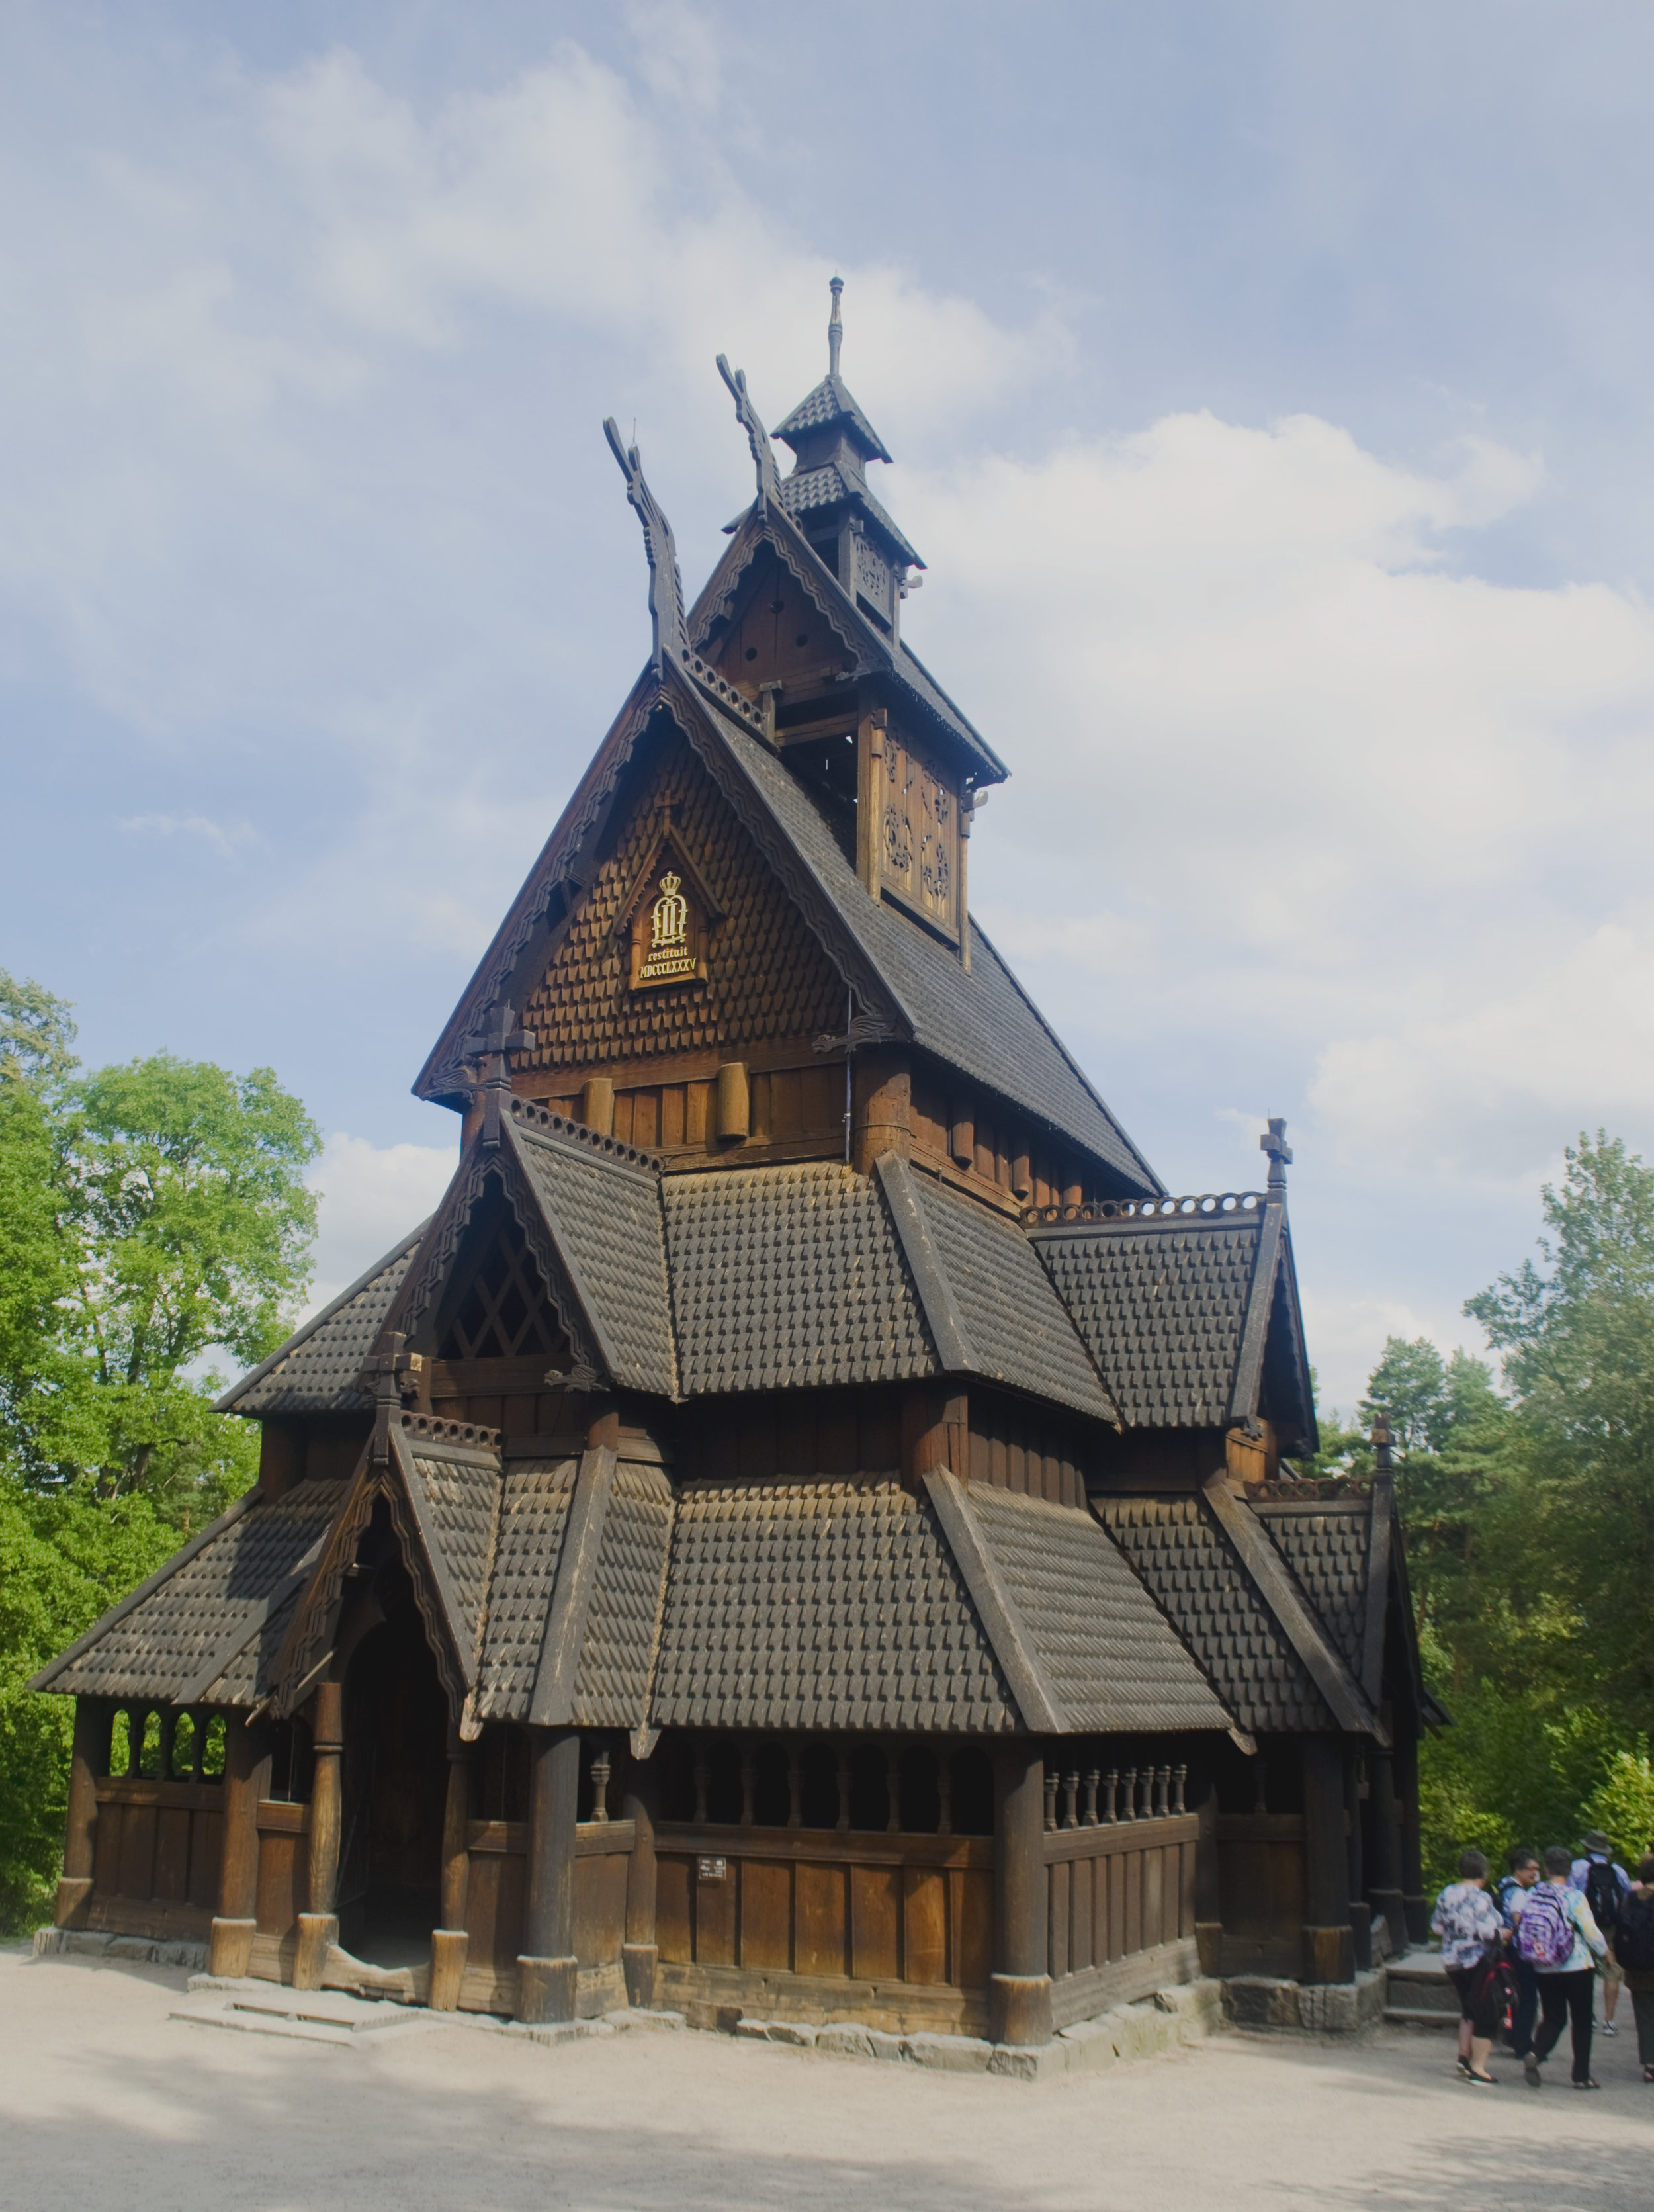 This is the stave church in Oslo, but it gives you an idea of what the Fantoft one is like!